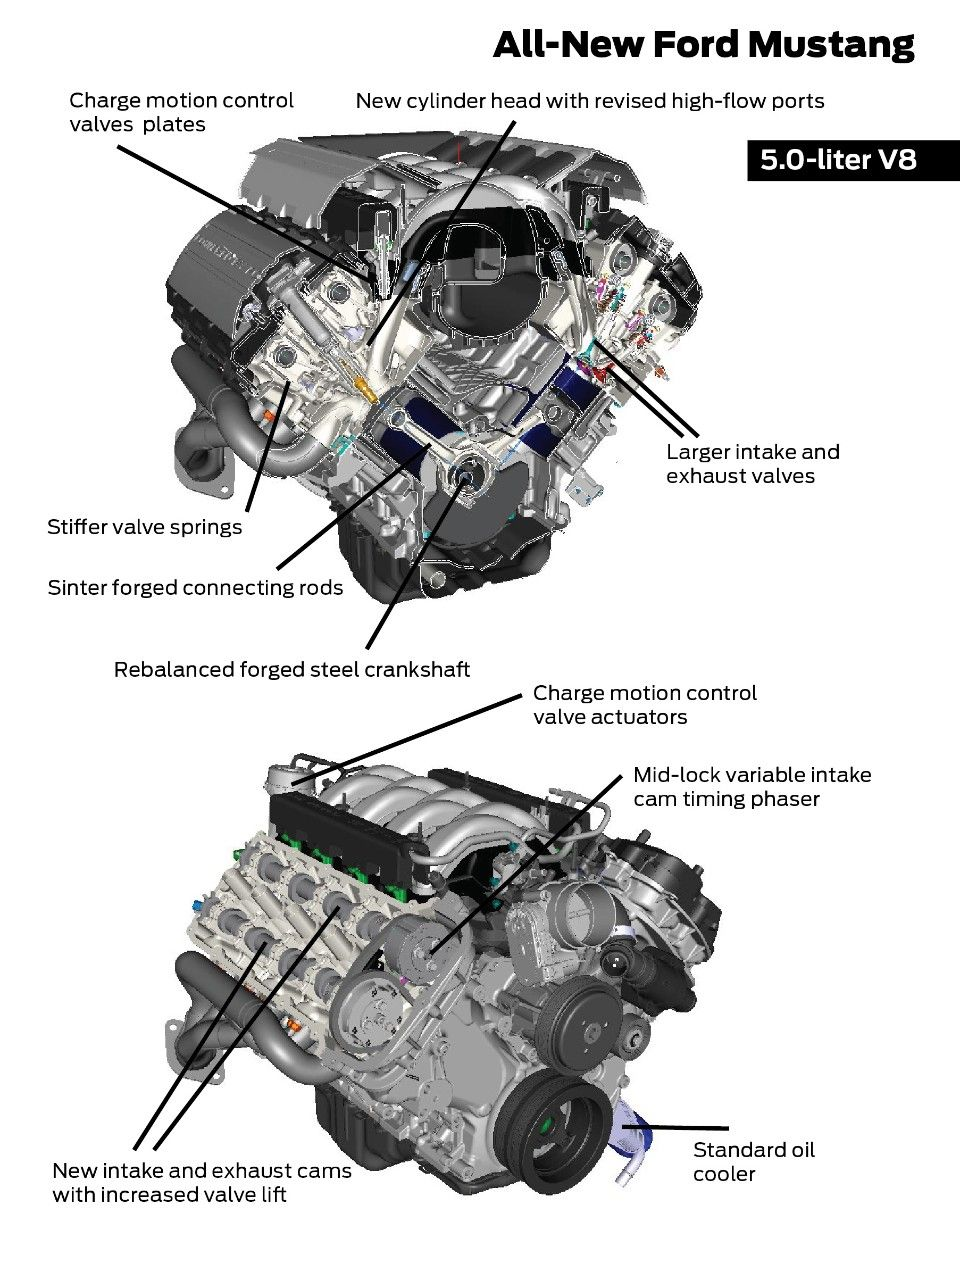 2015-17 Ford Coyote Mustang Engine Specs 5 0L | Mustangs | Mustang